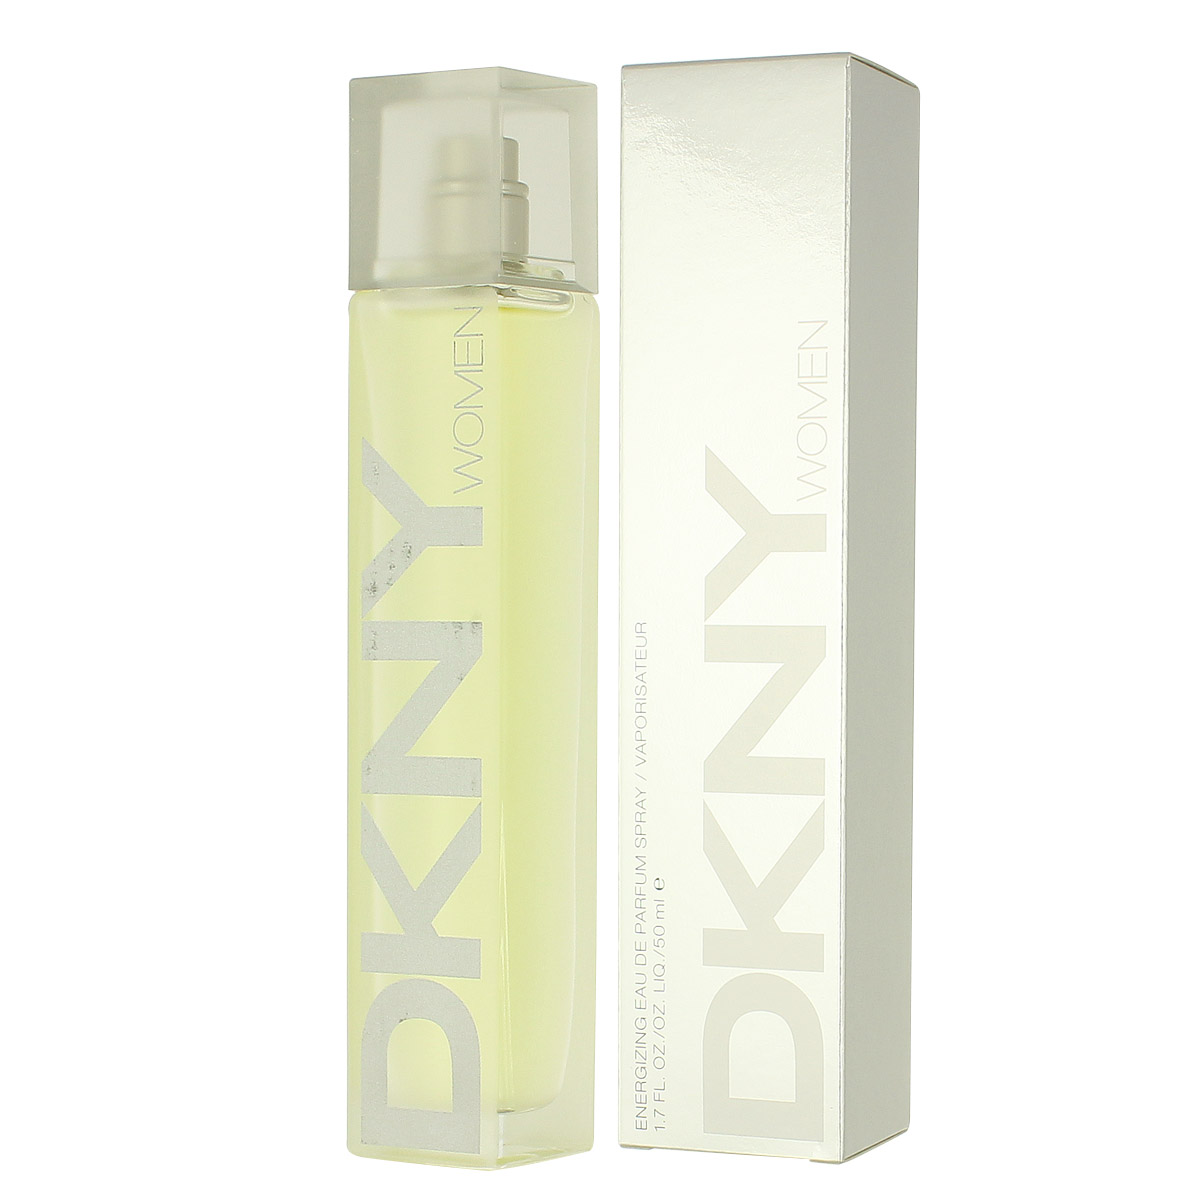 DKNY Donna Karan Energizing 2011 EDP 50 ml W